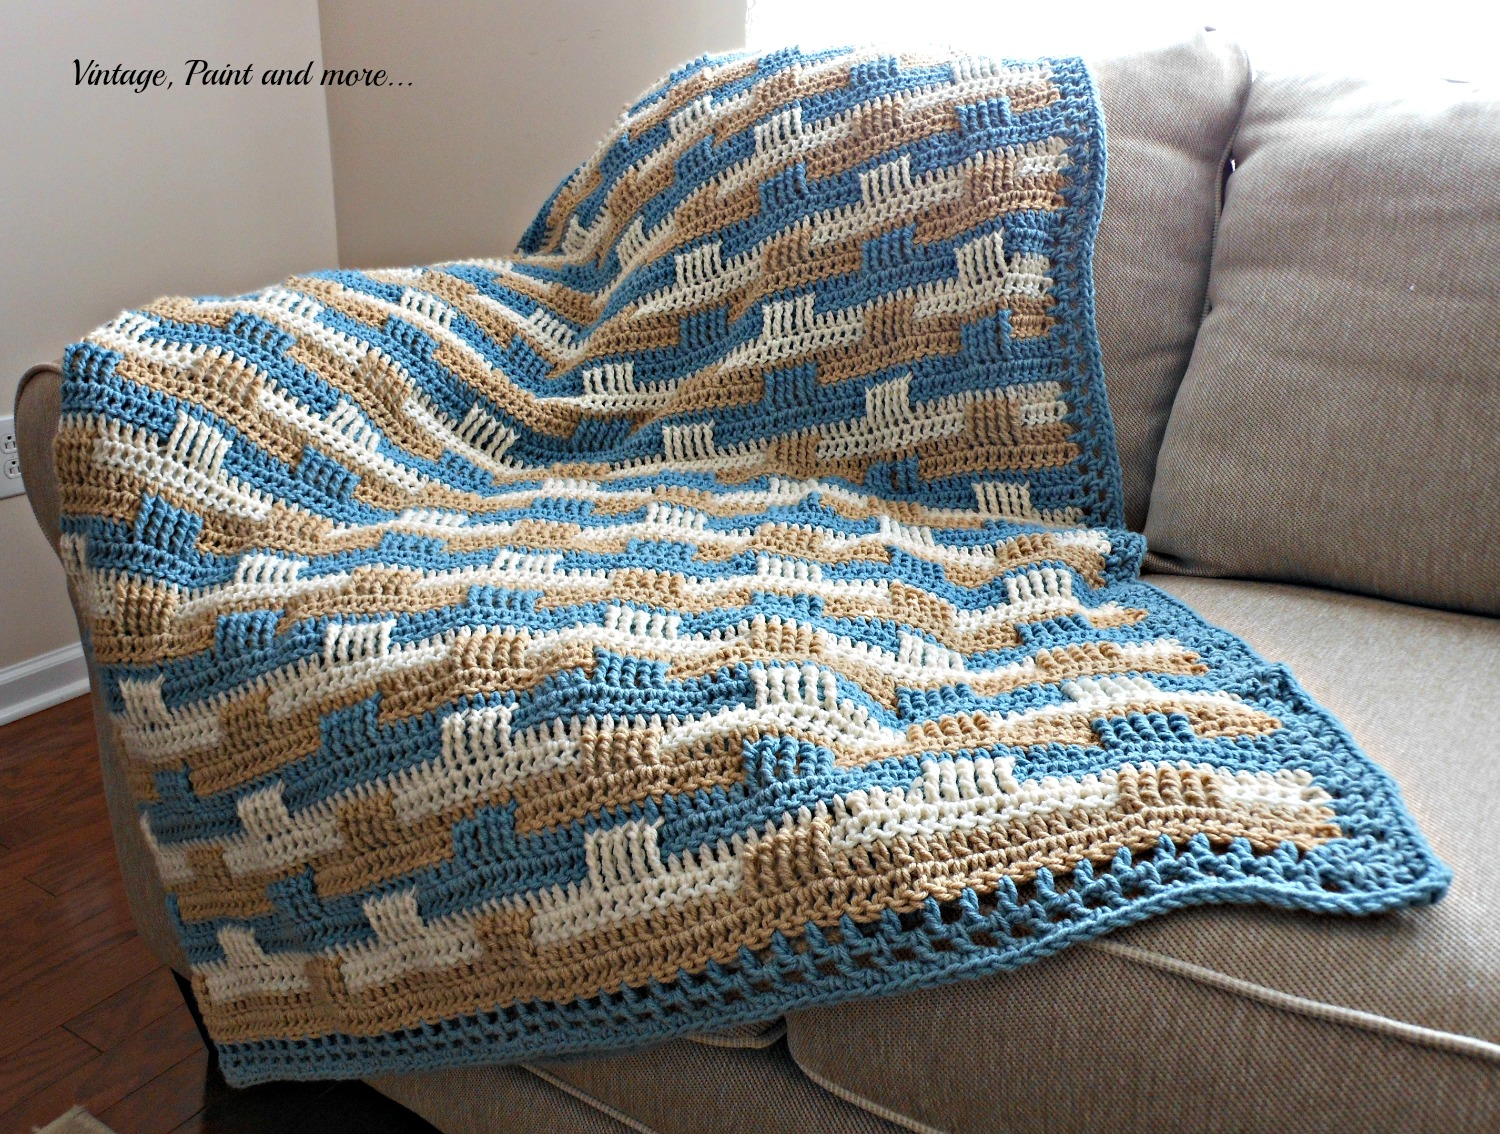 Crocheting And Weaving : Crochet Afghan and Stenciled Pillow Vintage, Paint and more...